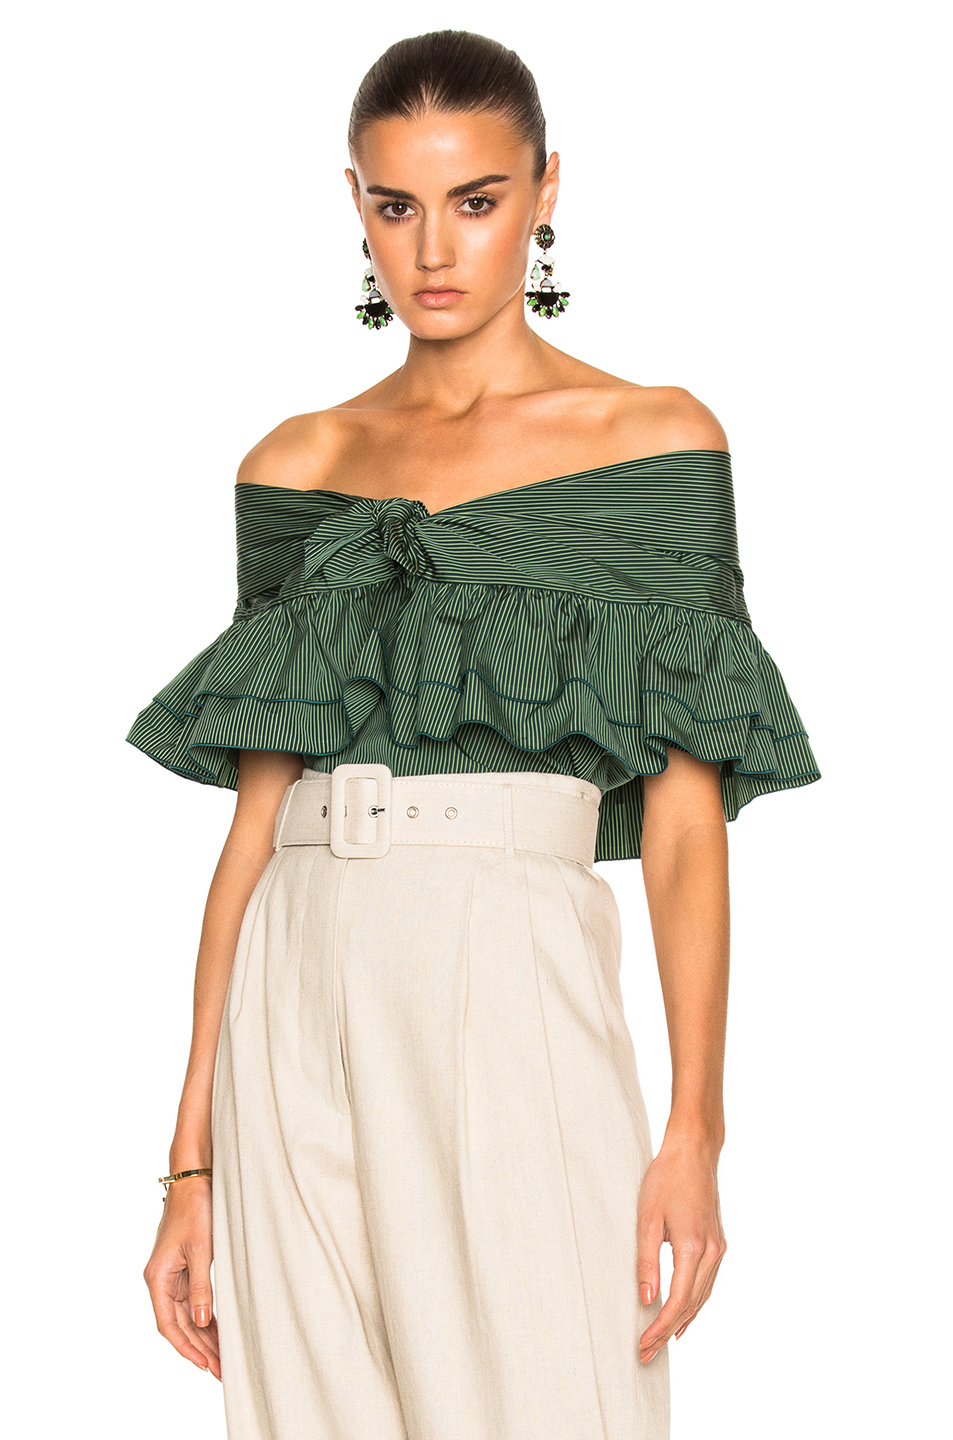 Isa Arfen Ruffle Knot Top with Short Sleeves in Green,Stripes